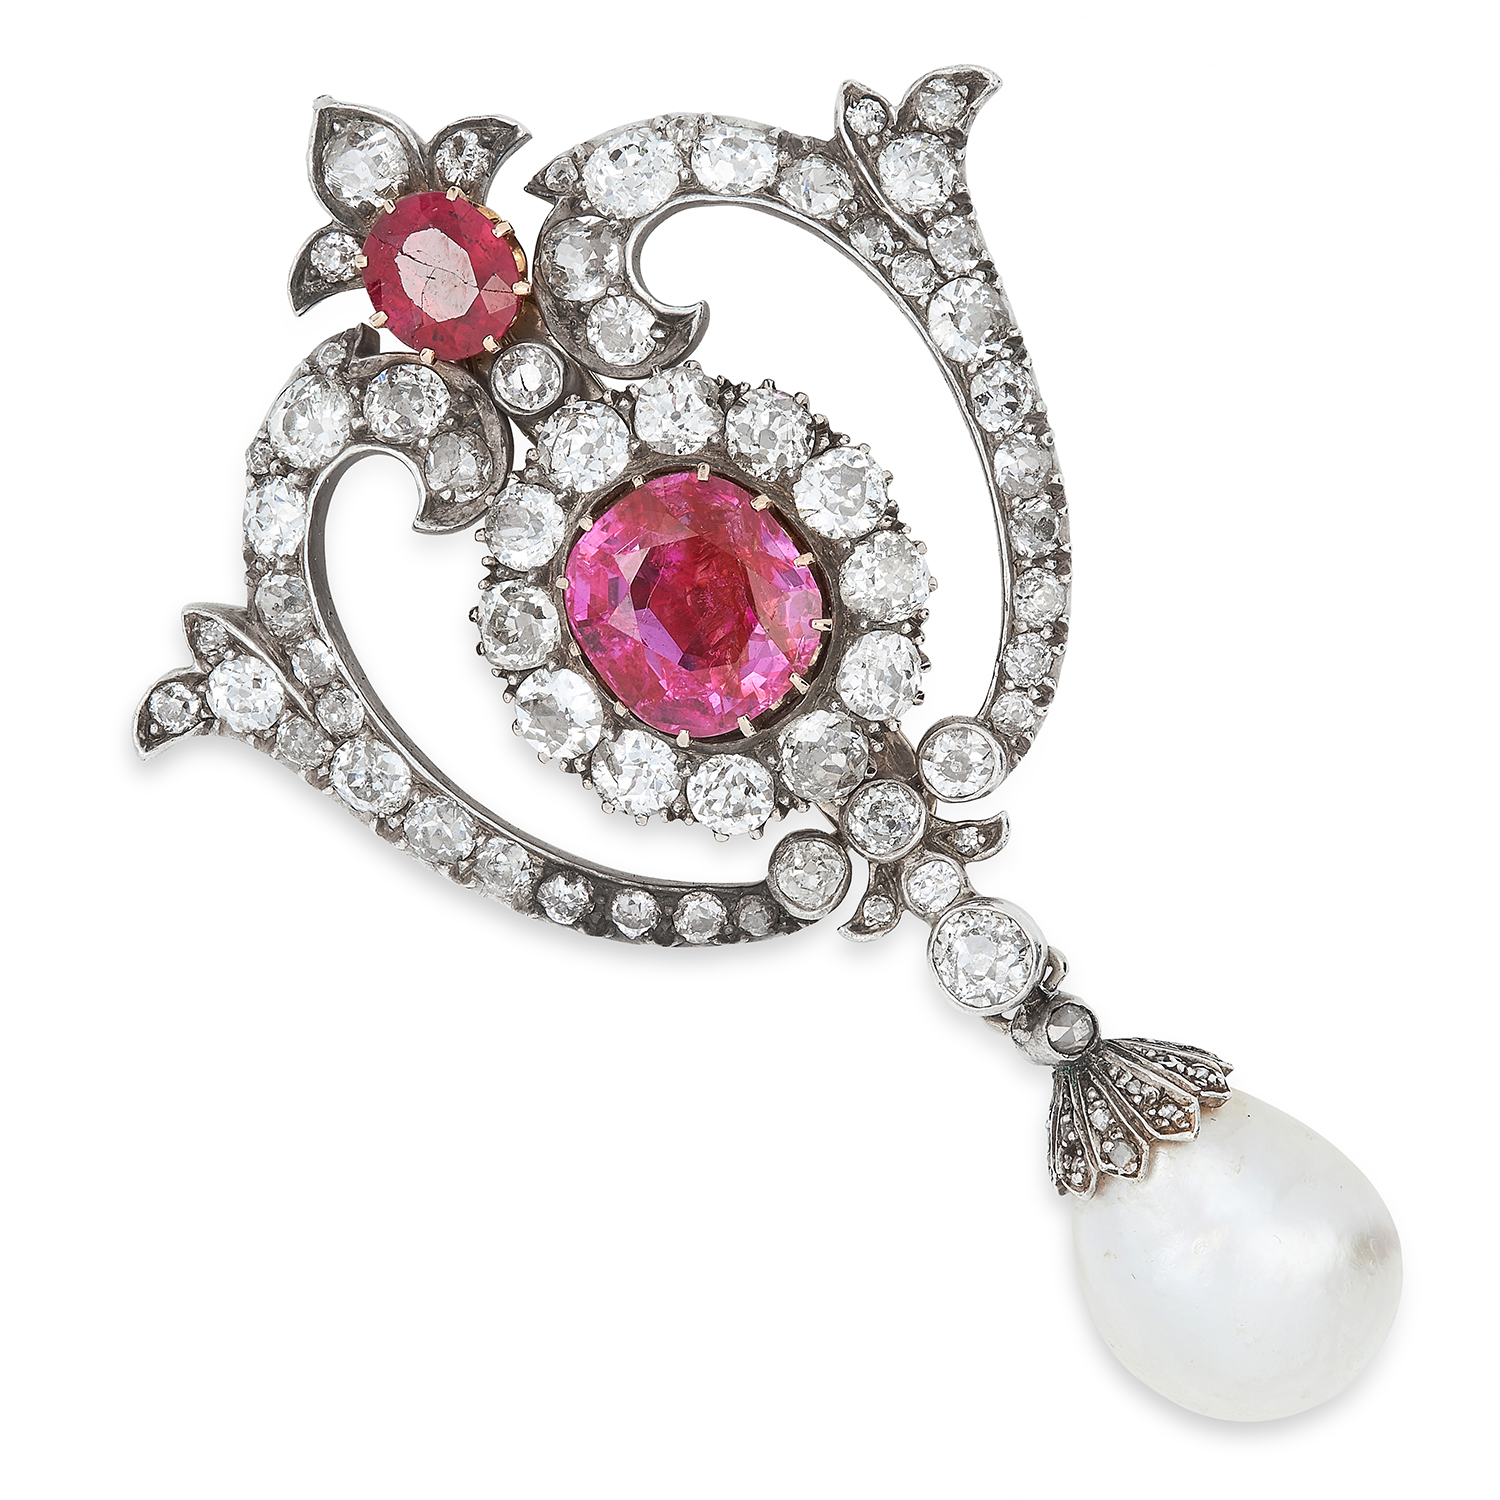 Los 46 - ANTIQUE BURMA NO HEAT RUBY, DIAMOND AND NATURAL PEARL BROOCH set with a principal val cut ruby of